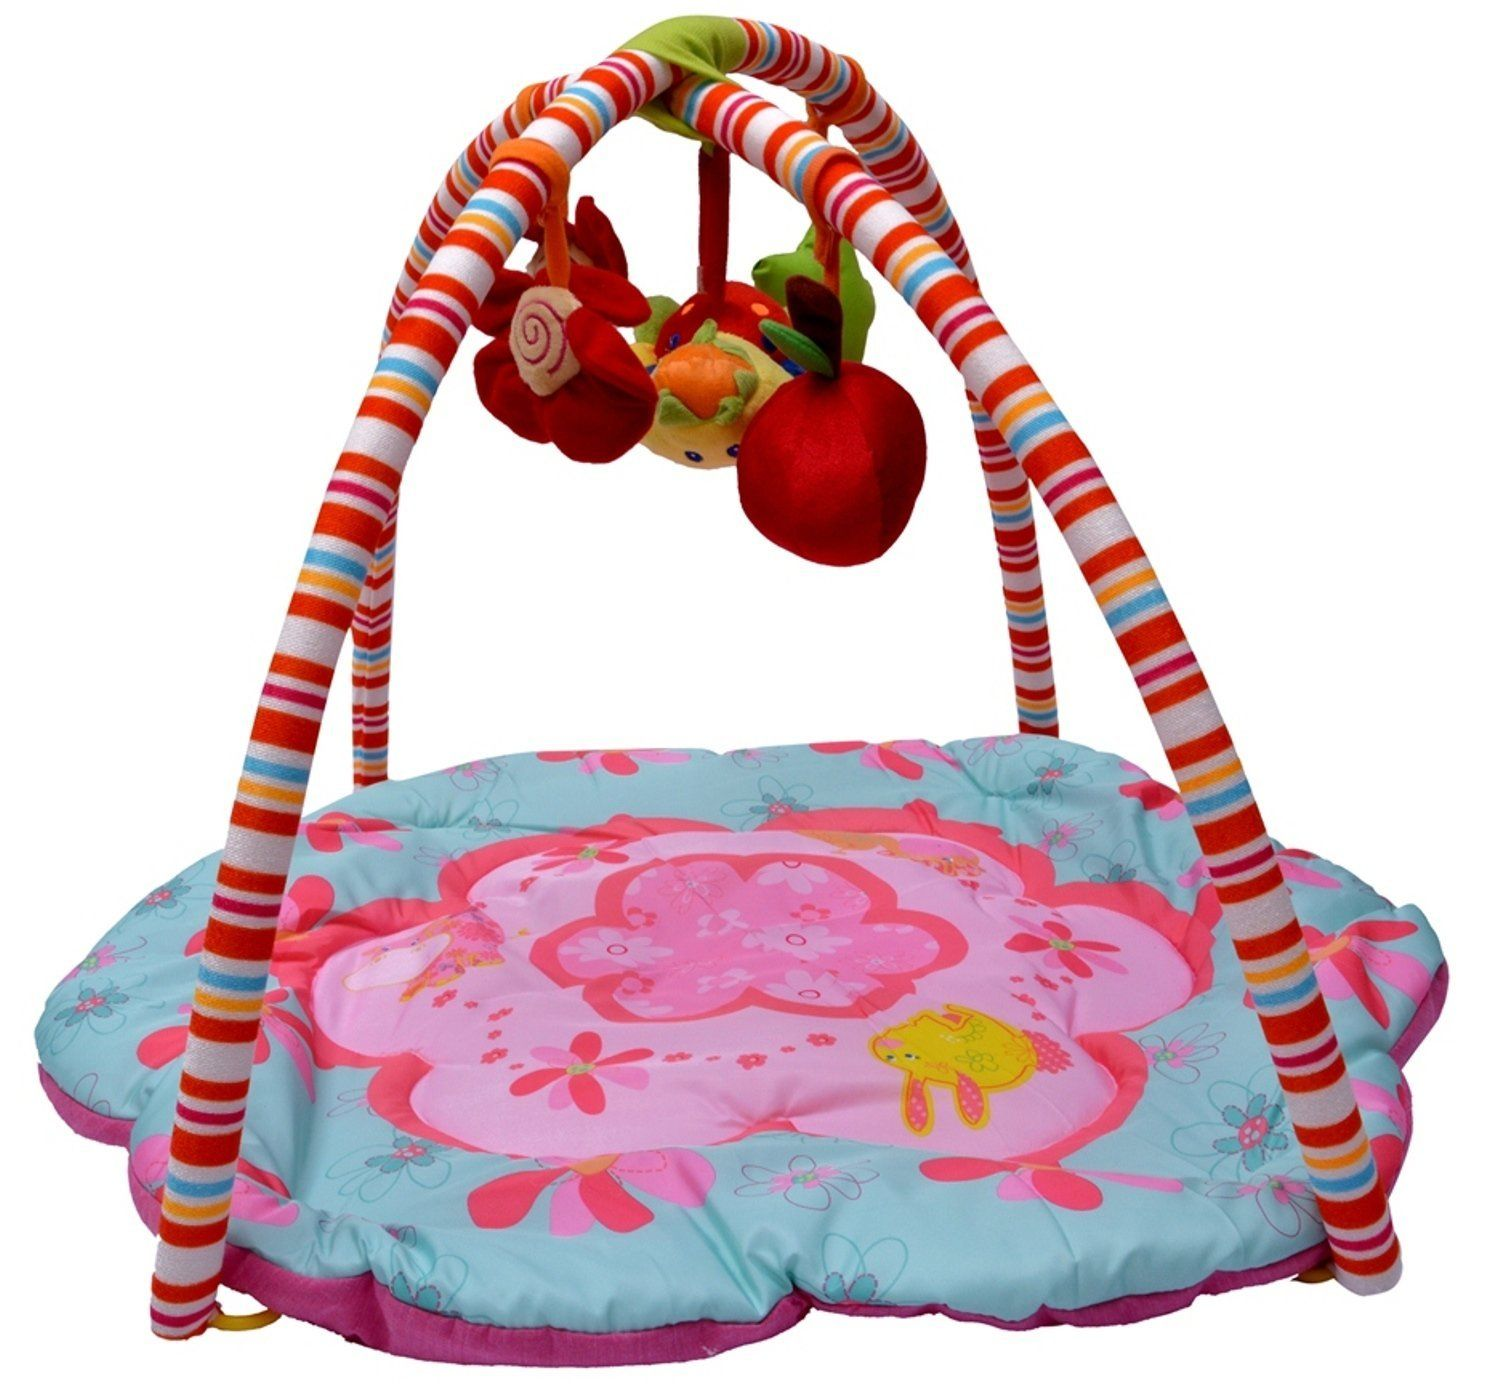 Baby Play Gym Mat The Pinky House Soft Padded with 4 soft